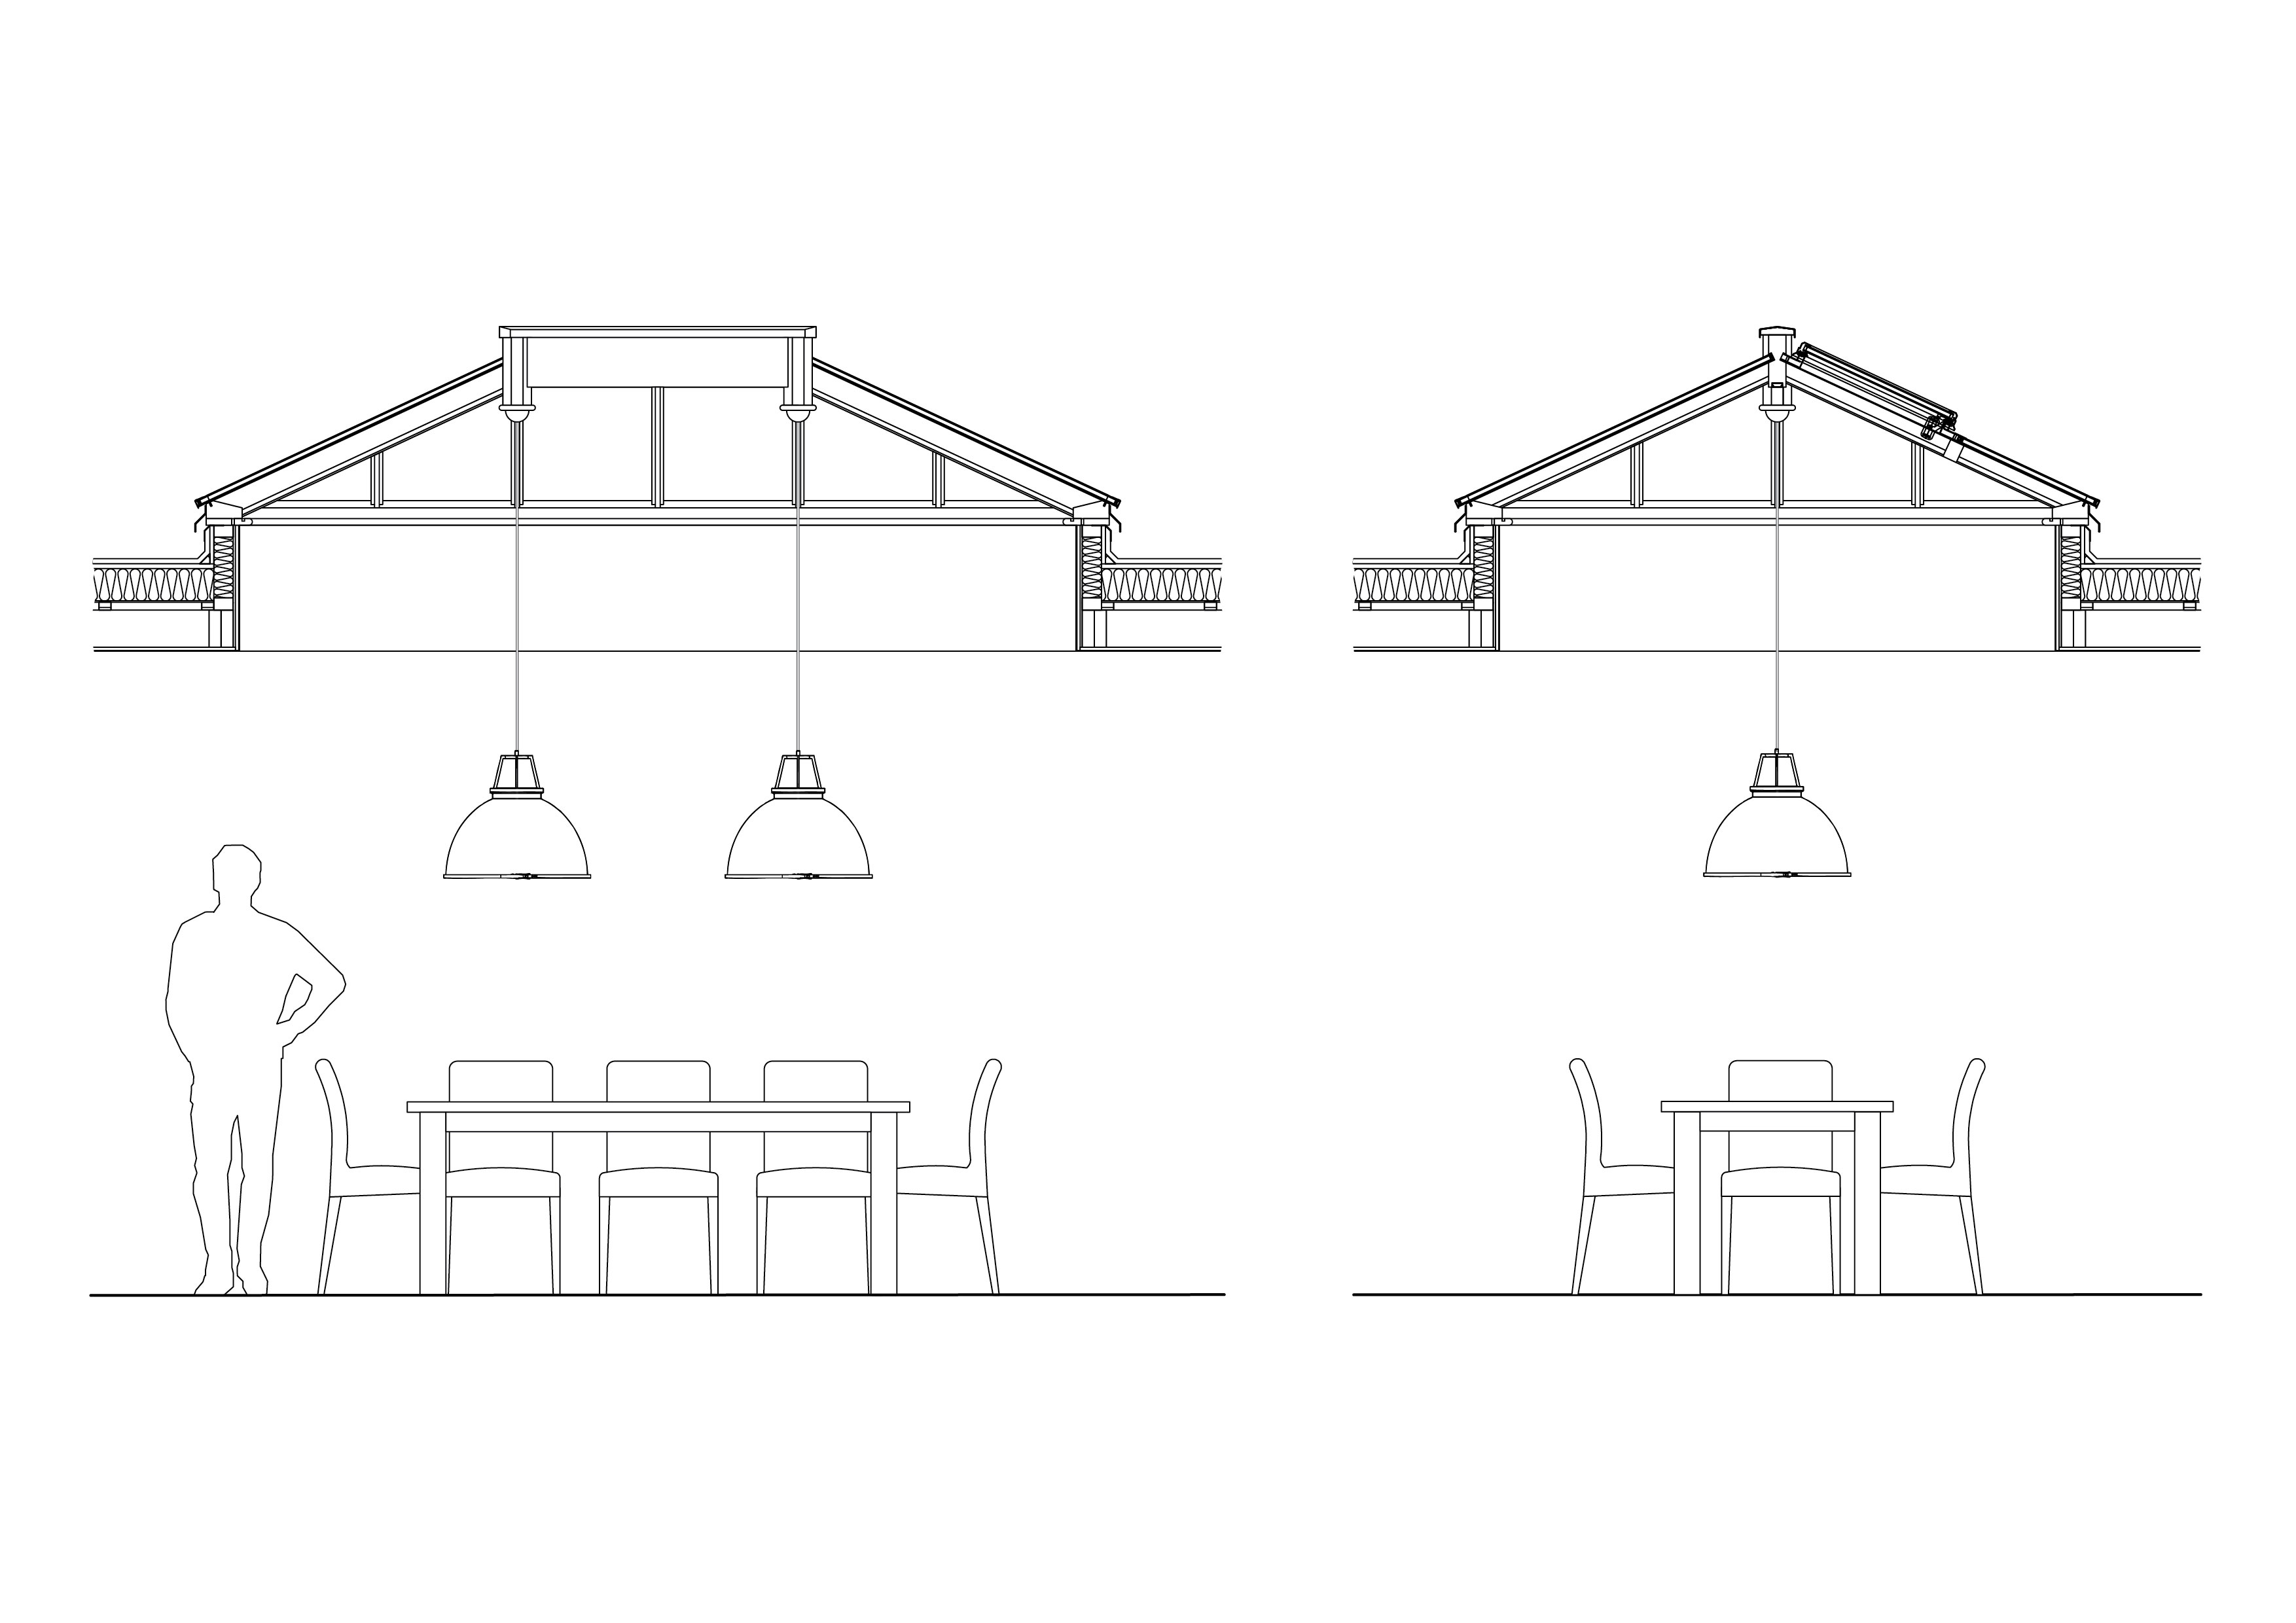 Drawing of Titan pendant lights hanging from roof lantern